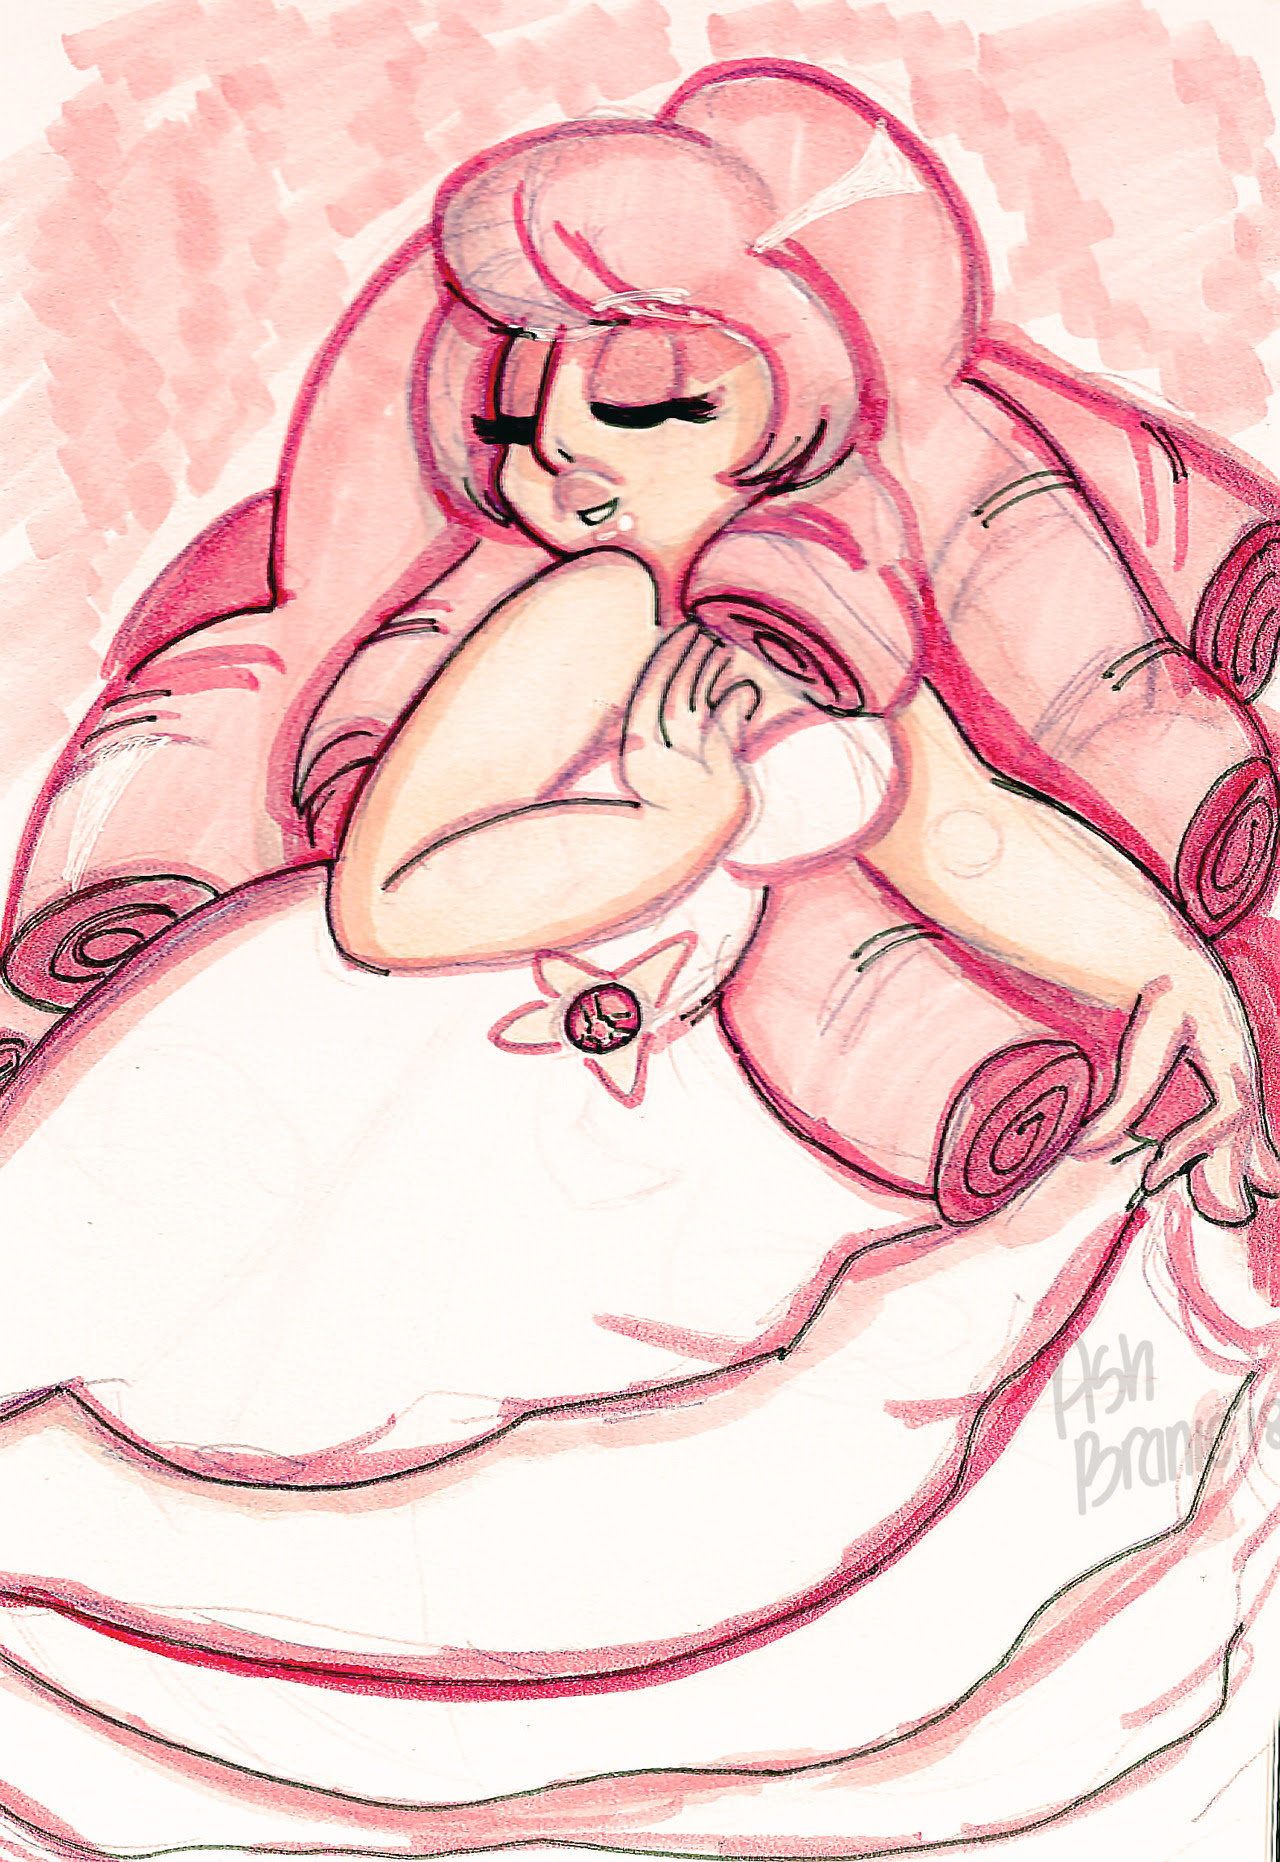 Marker doodle of Rose Quartz. Speedpaint of this coming tomorrow